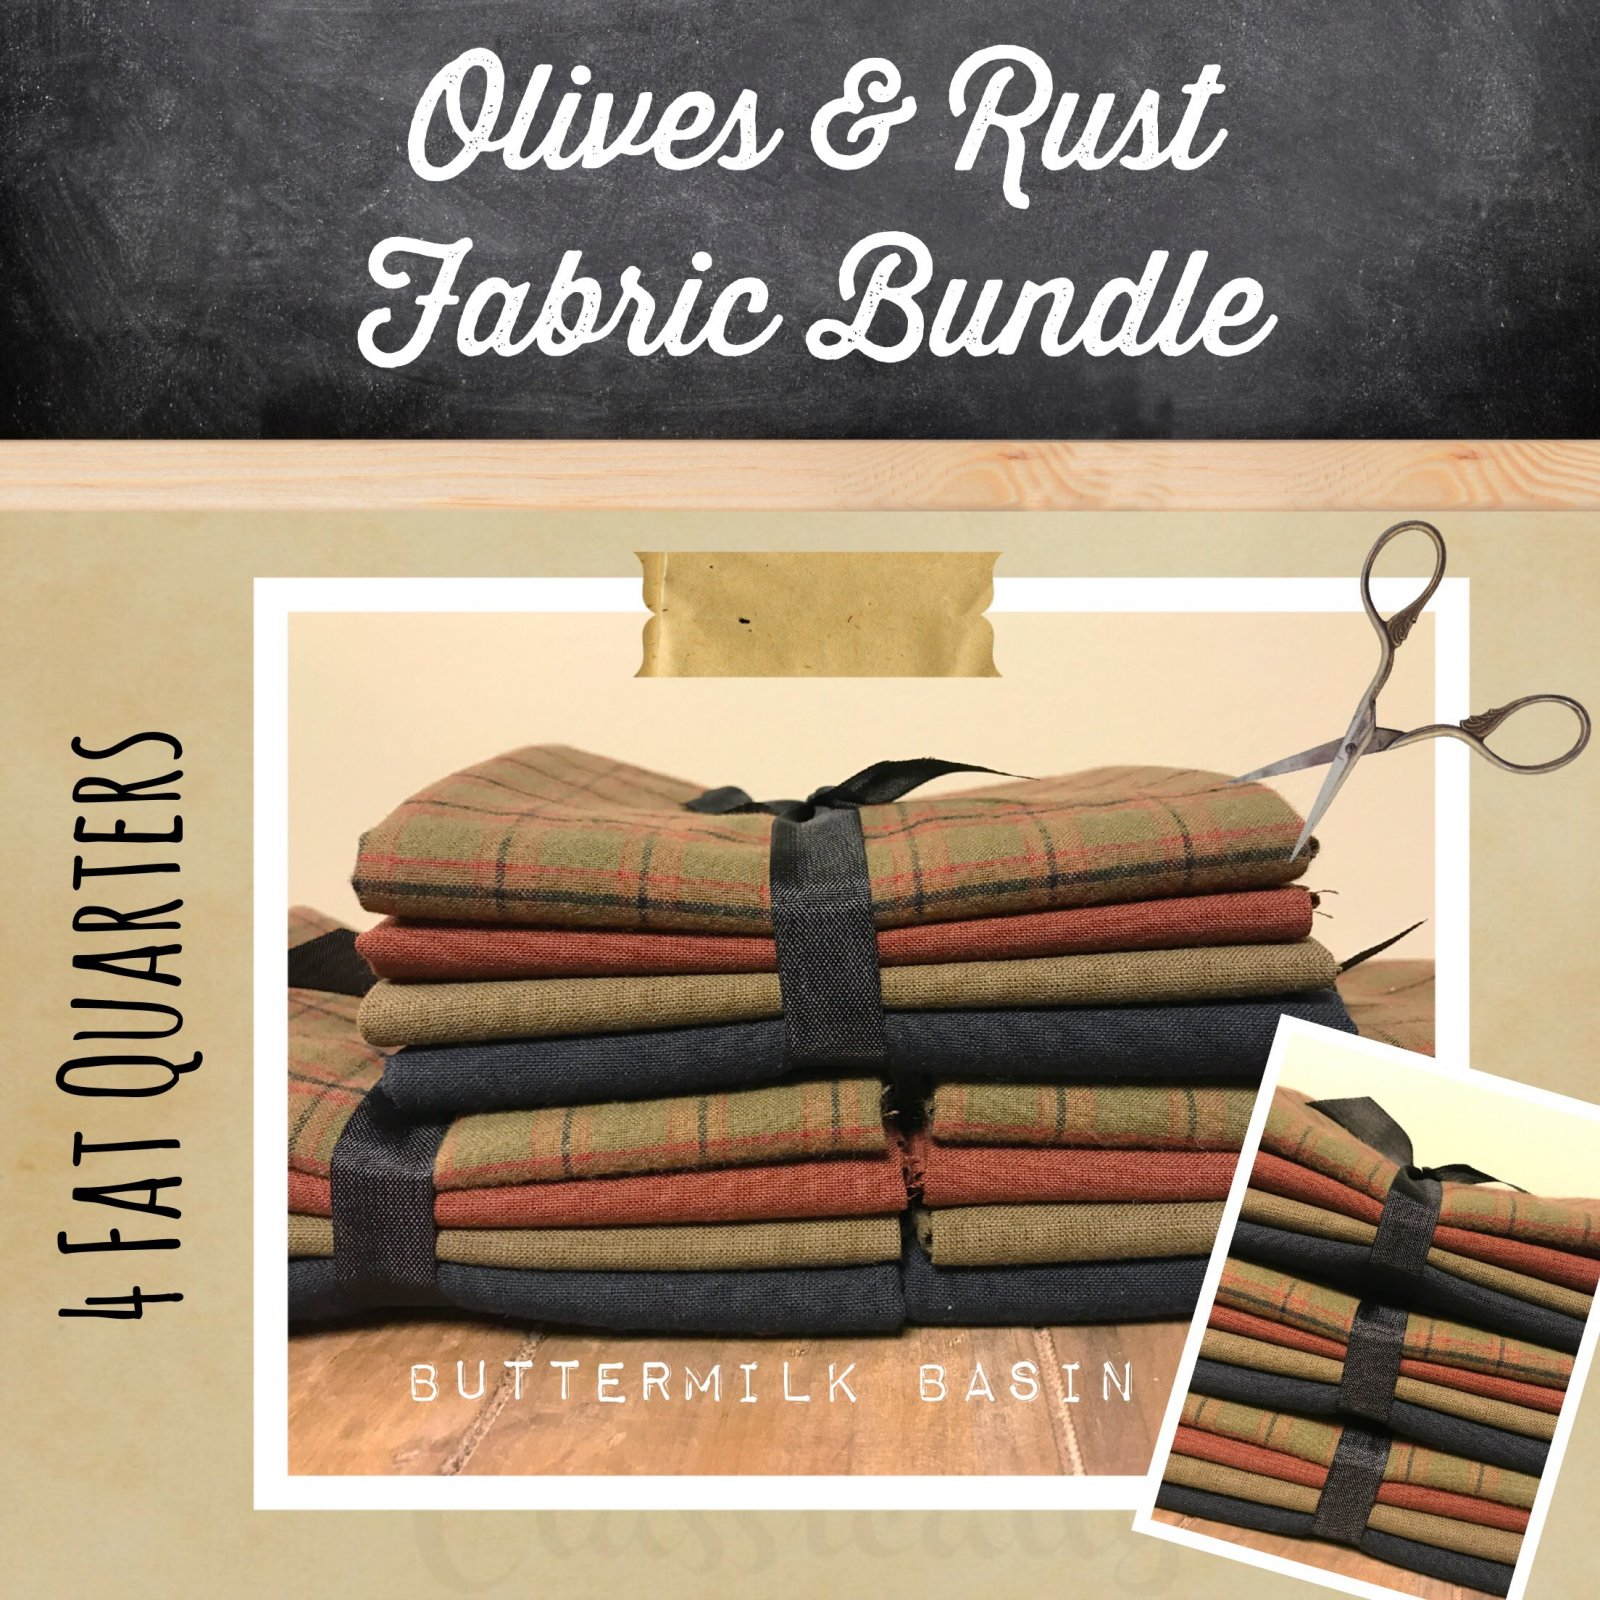 Olives & Rust Woven Fabric Bundle